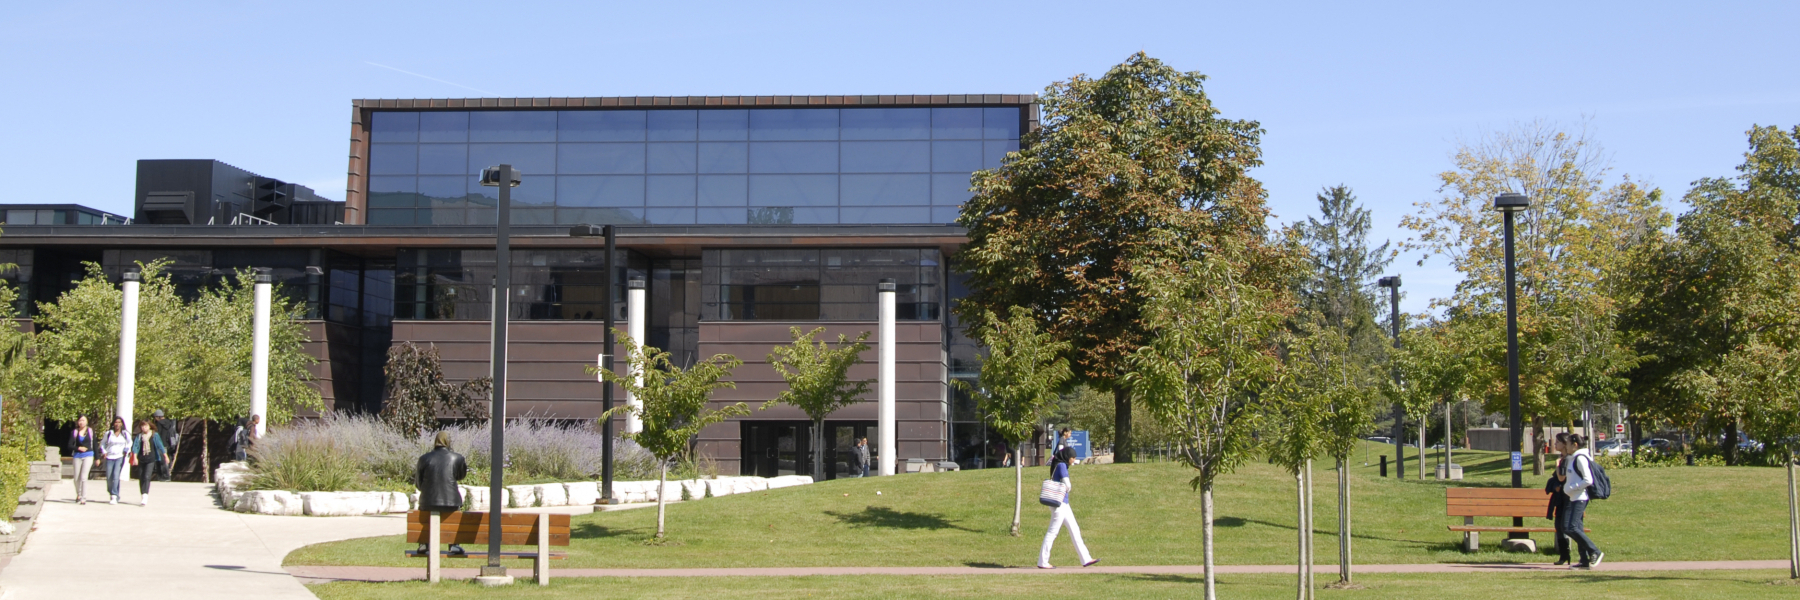 UTSC Academic Resource Center